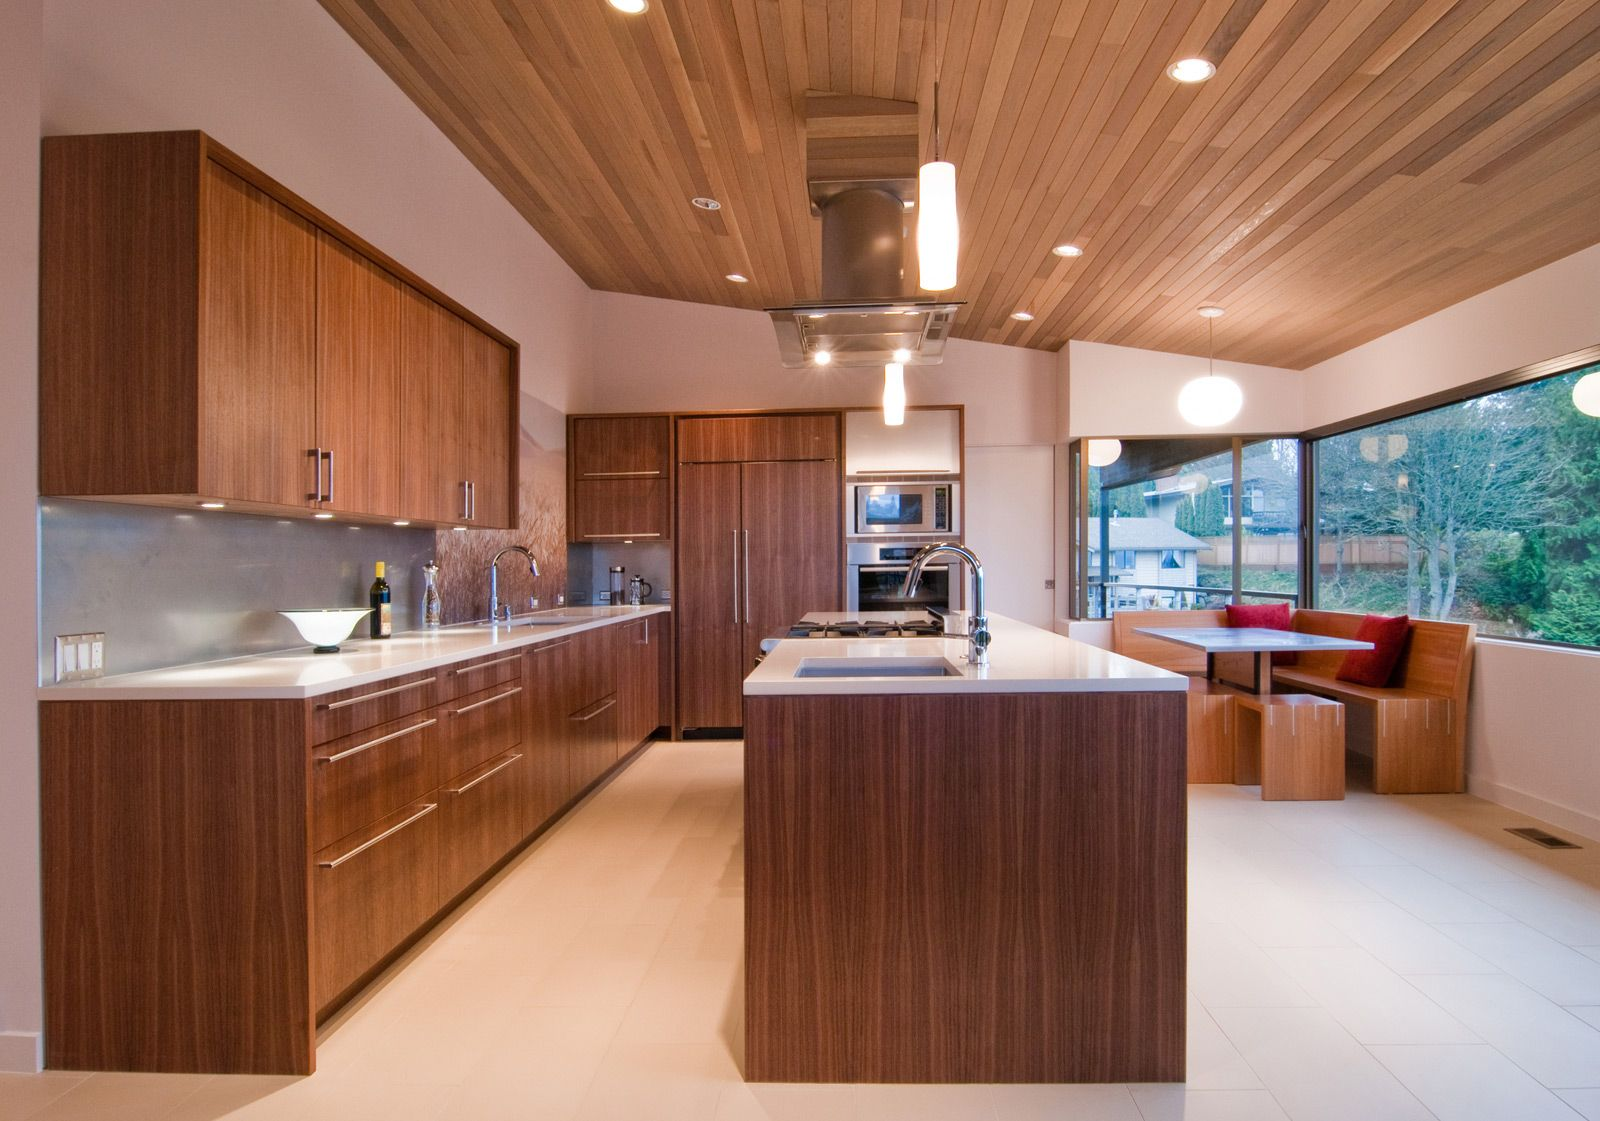 Classic Mcm Gets A Warm Modern Update Build Blog Modern Walnut Kitchen Walnut Kitchen Cabinets Modern Kitchen